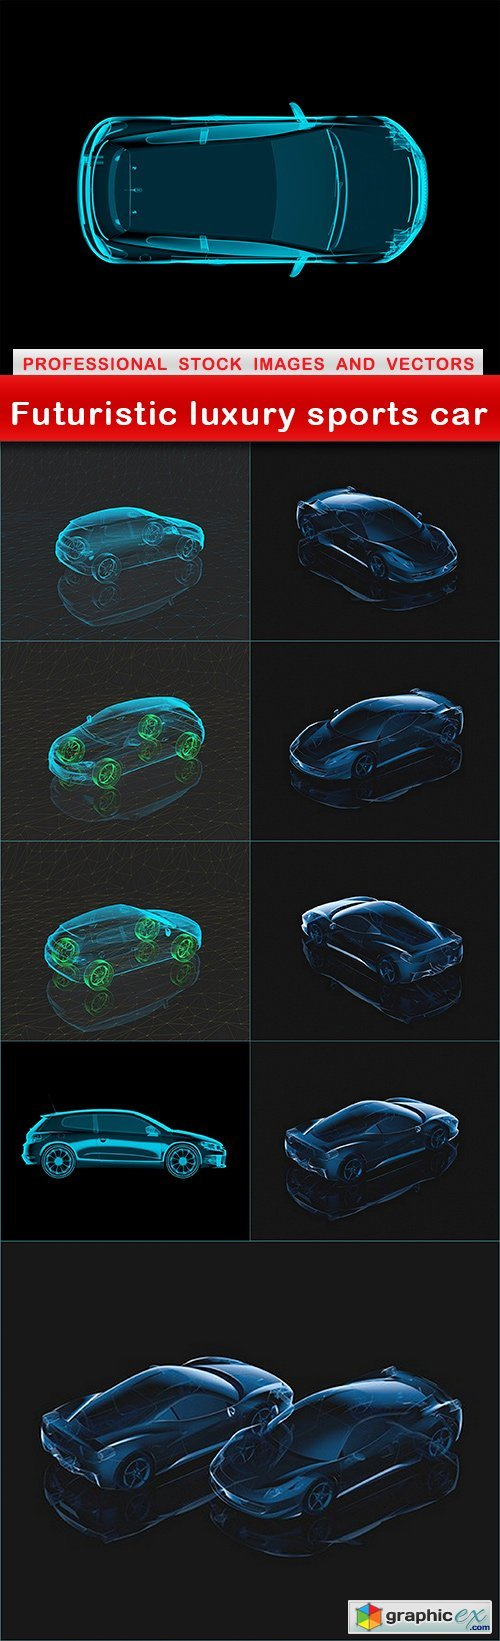 Futuristic luxury sports car - 10 UHQ JPEG